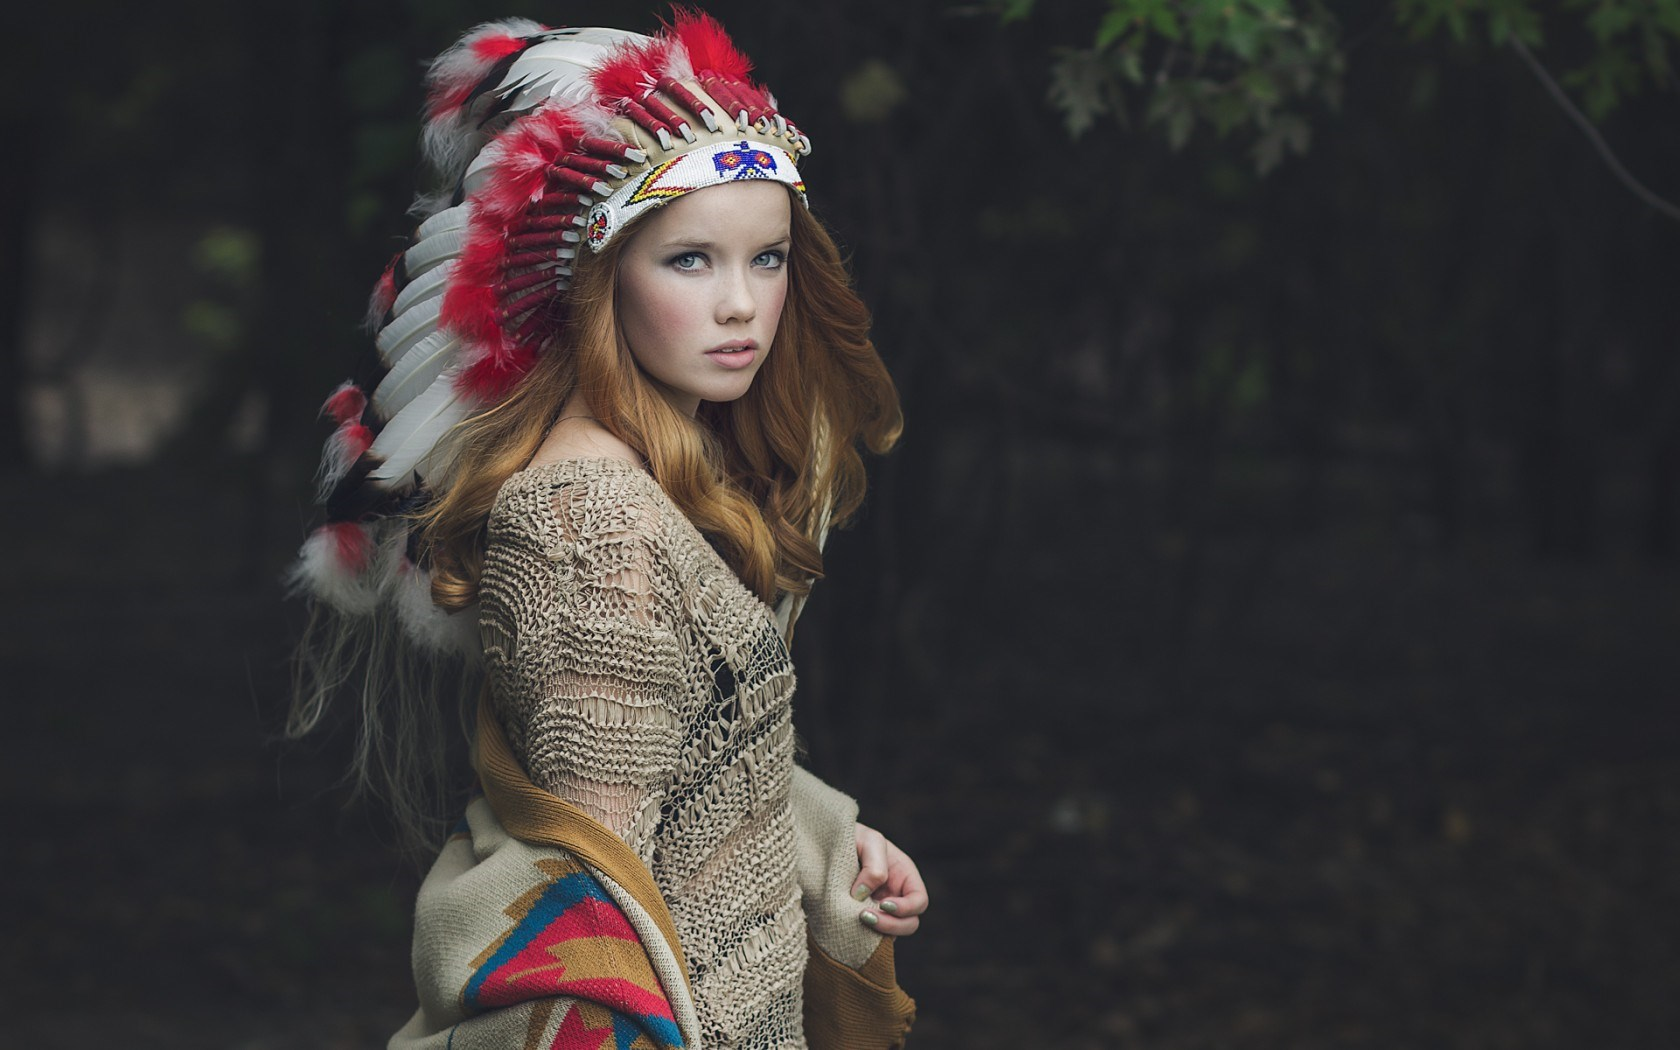 Lovely Girl Headdress Feathers HD Wallpaper